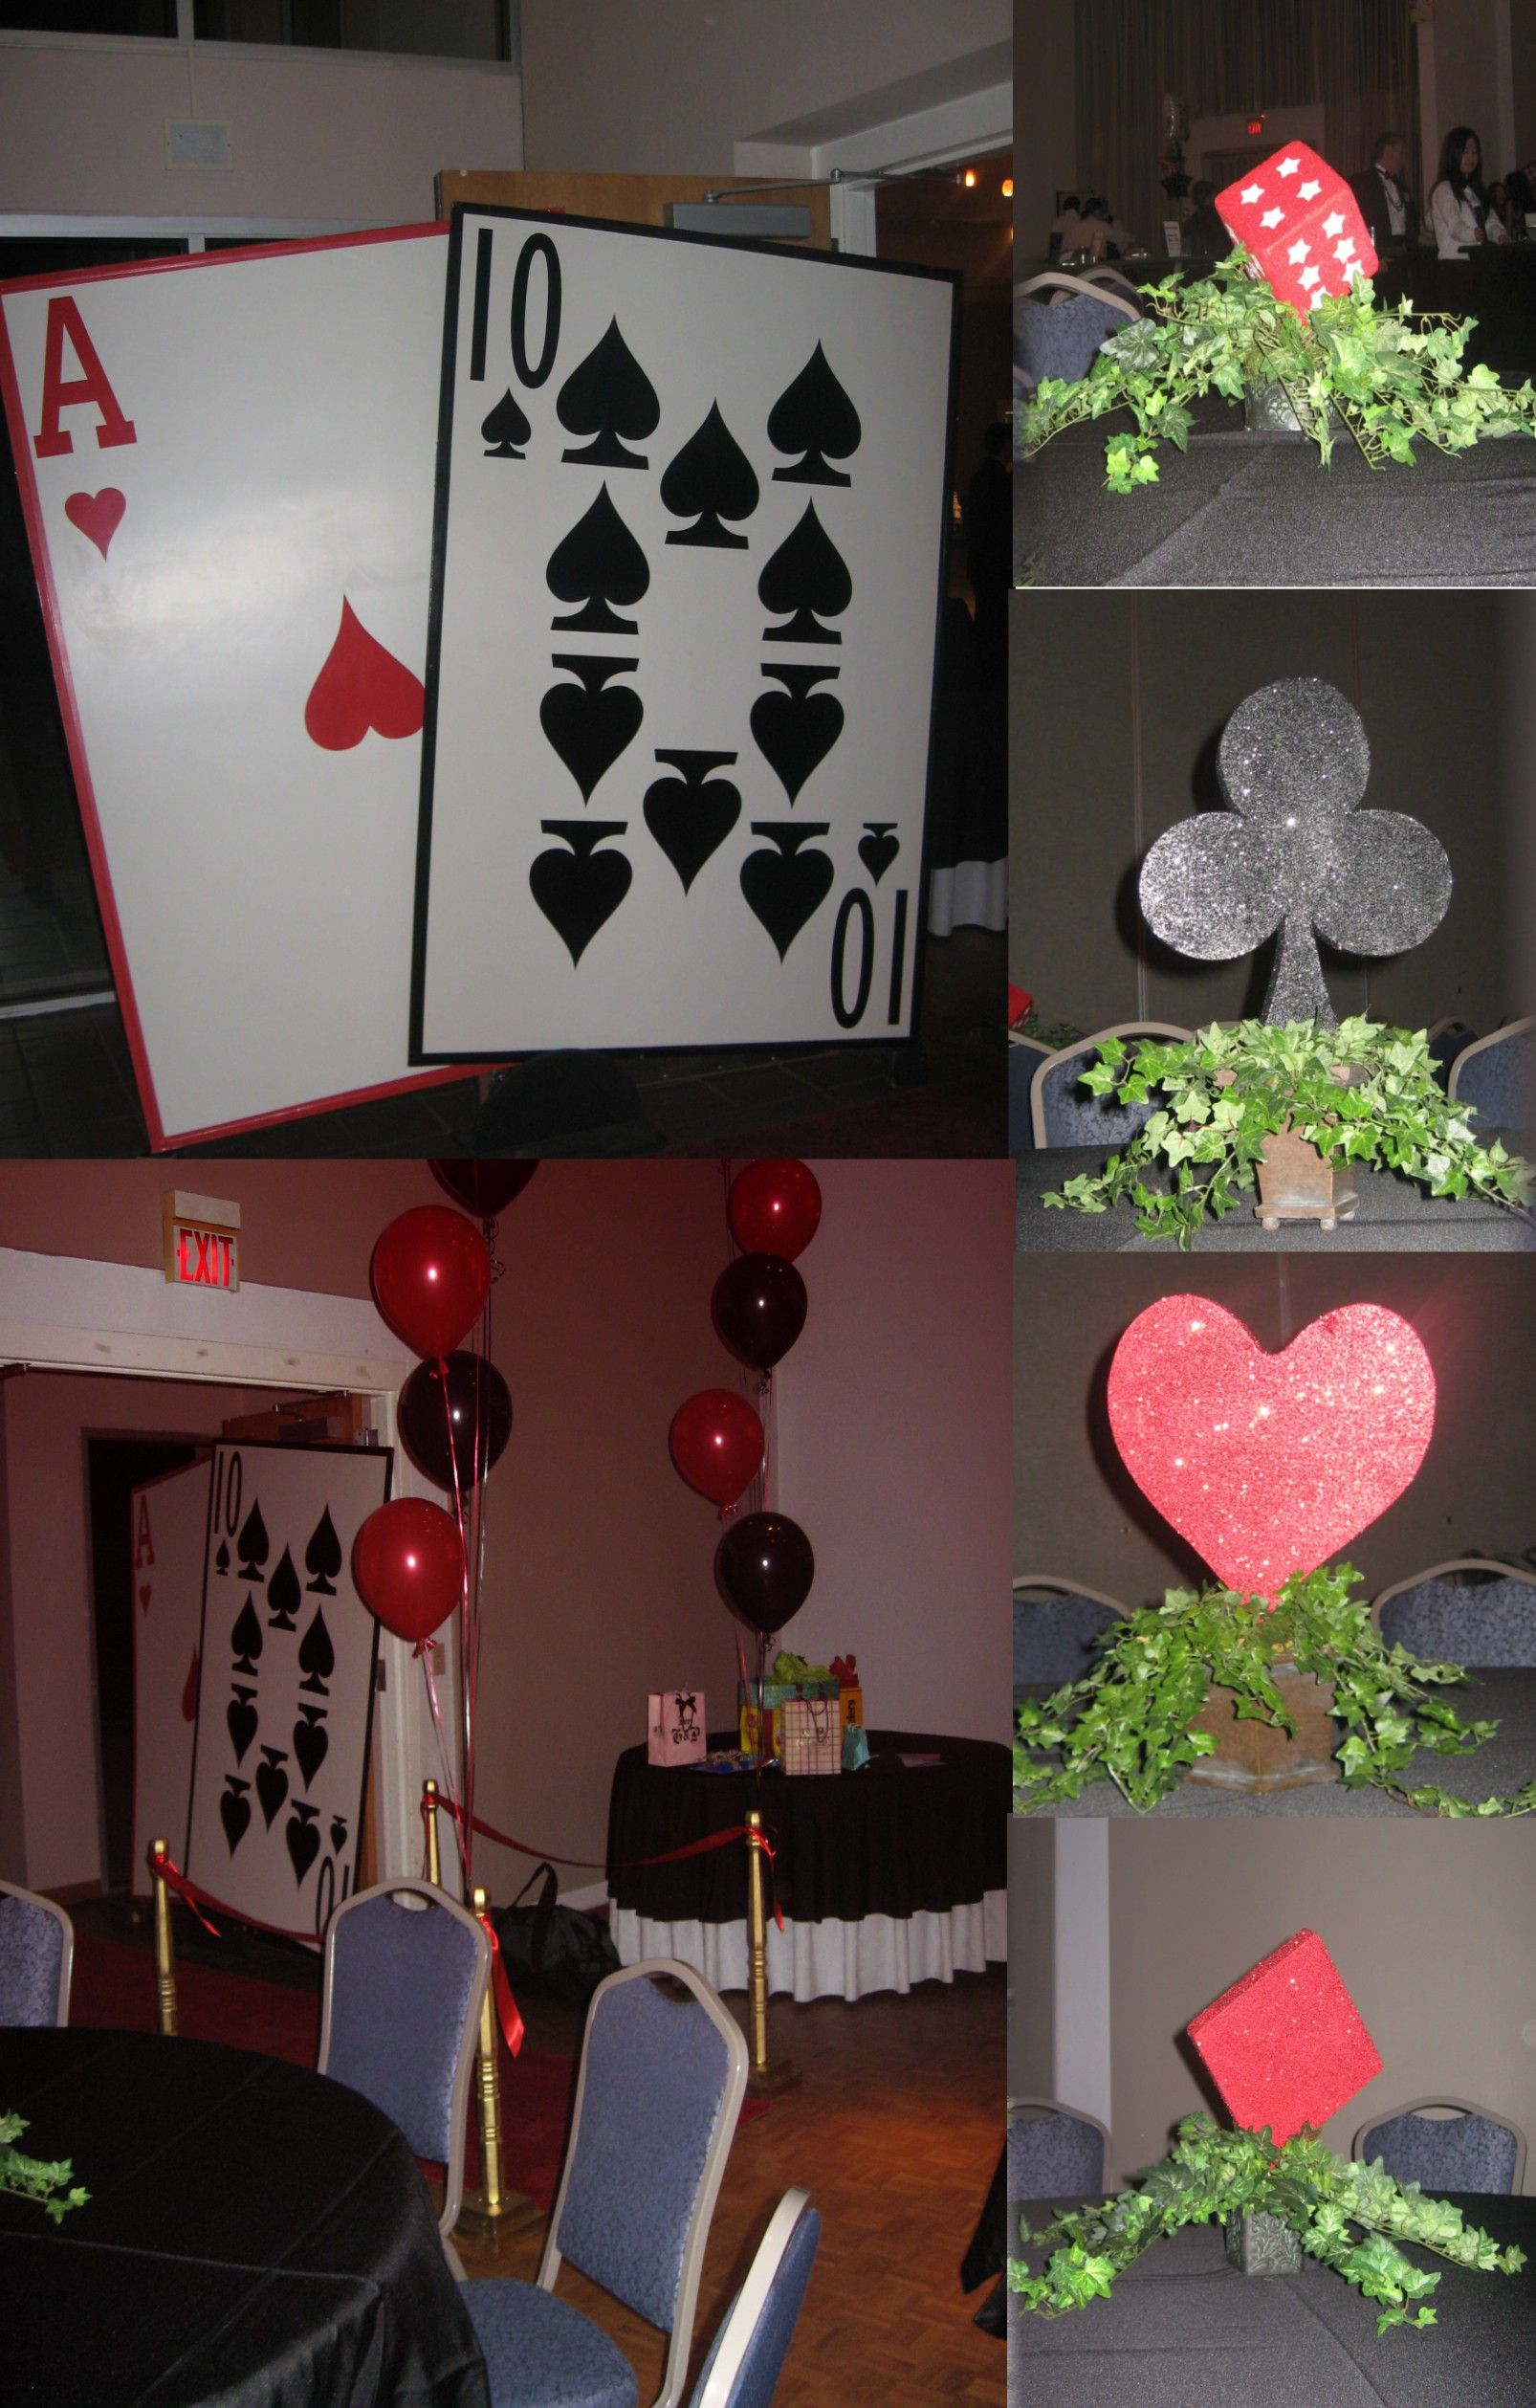 DIY Casino Party Decorations | How to Make a Budget DIY Poker Theme Centerpiece u2013 YouTube These might be good ideas & DIY Casino Party Decorations | How to Make a Budget DIY Poker Theme ...